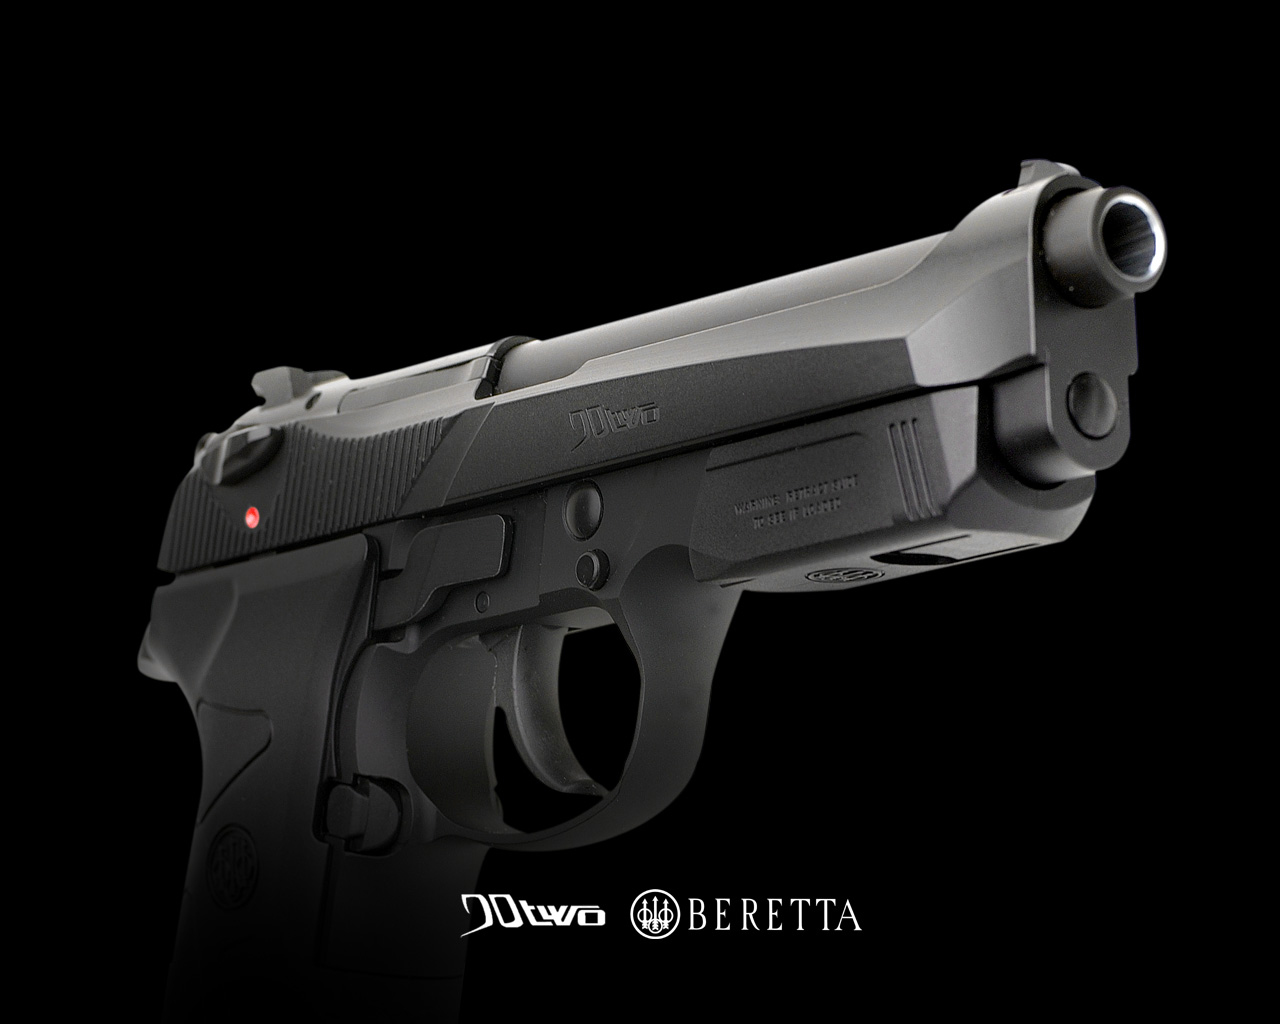 Sfera Gun Club: Beretta 90two, Type F, 9mm Πιστόλι